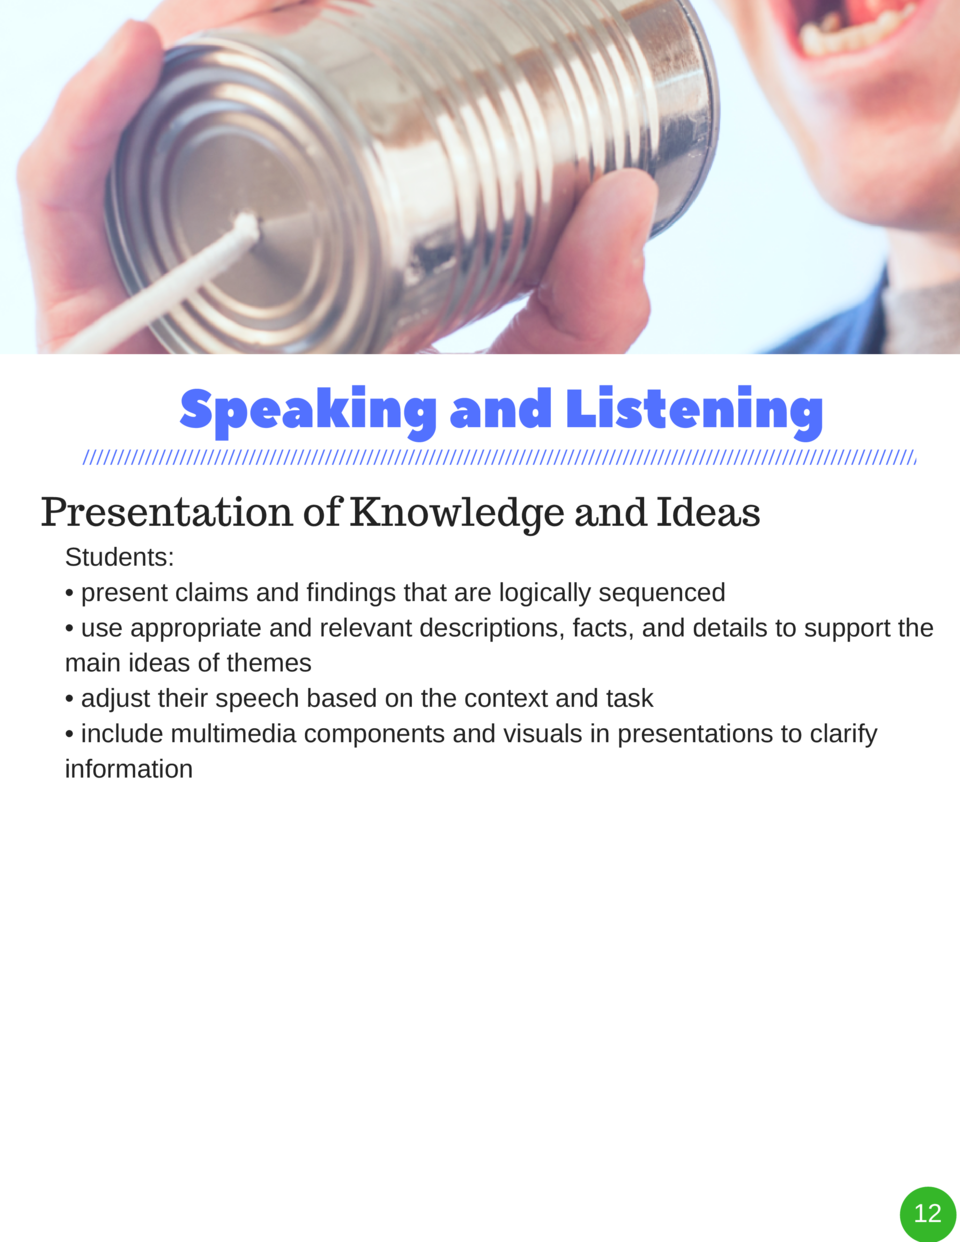 Speaking and Listening Presentation of Knowledge and Ideas Students      present claims and findings that are logically se...